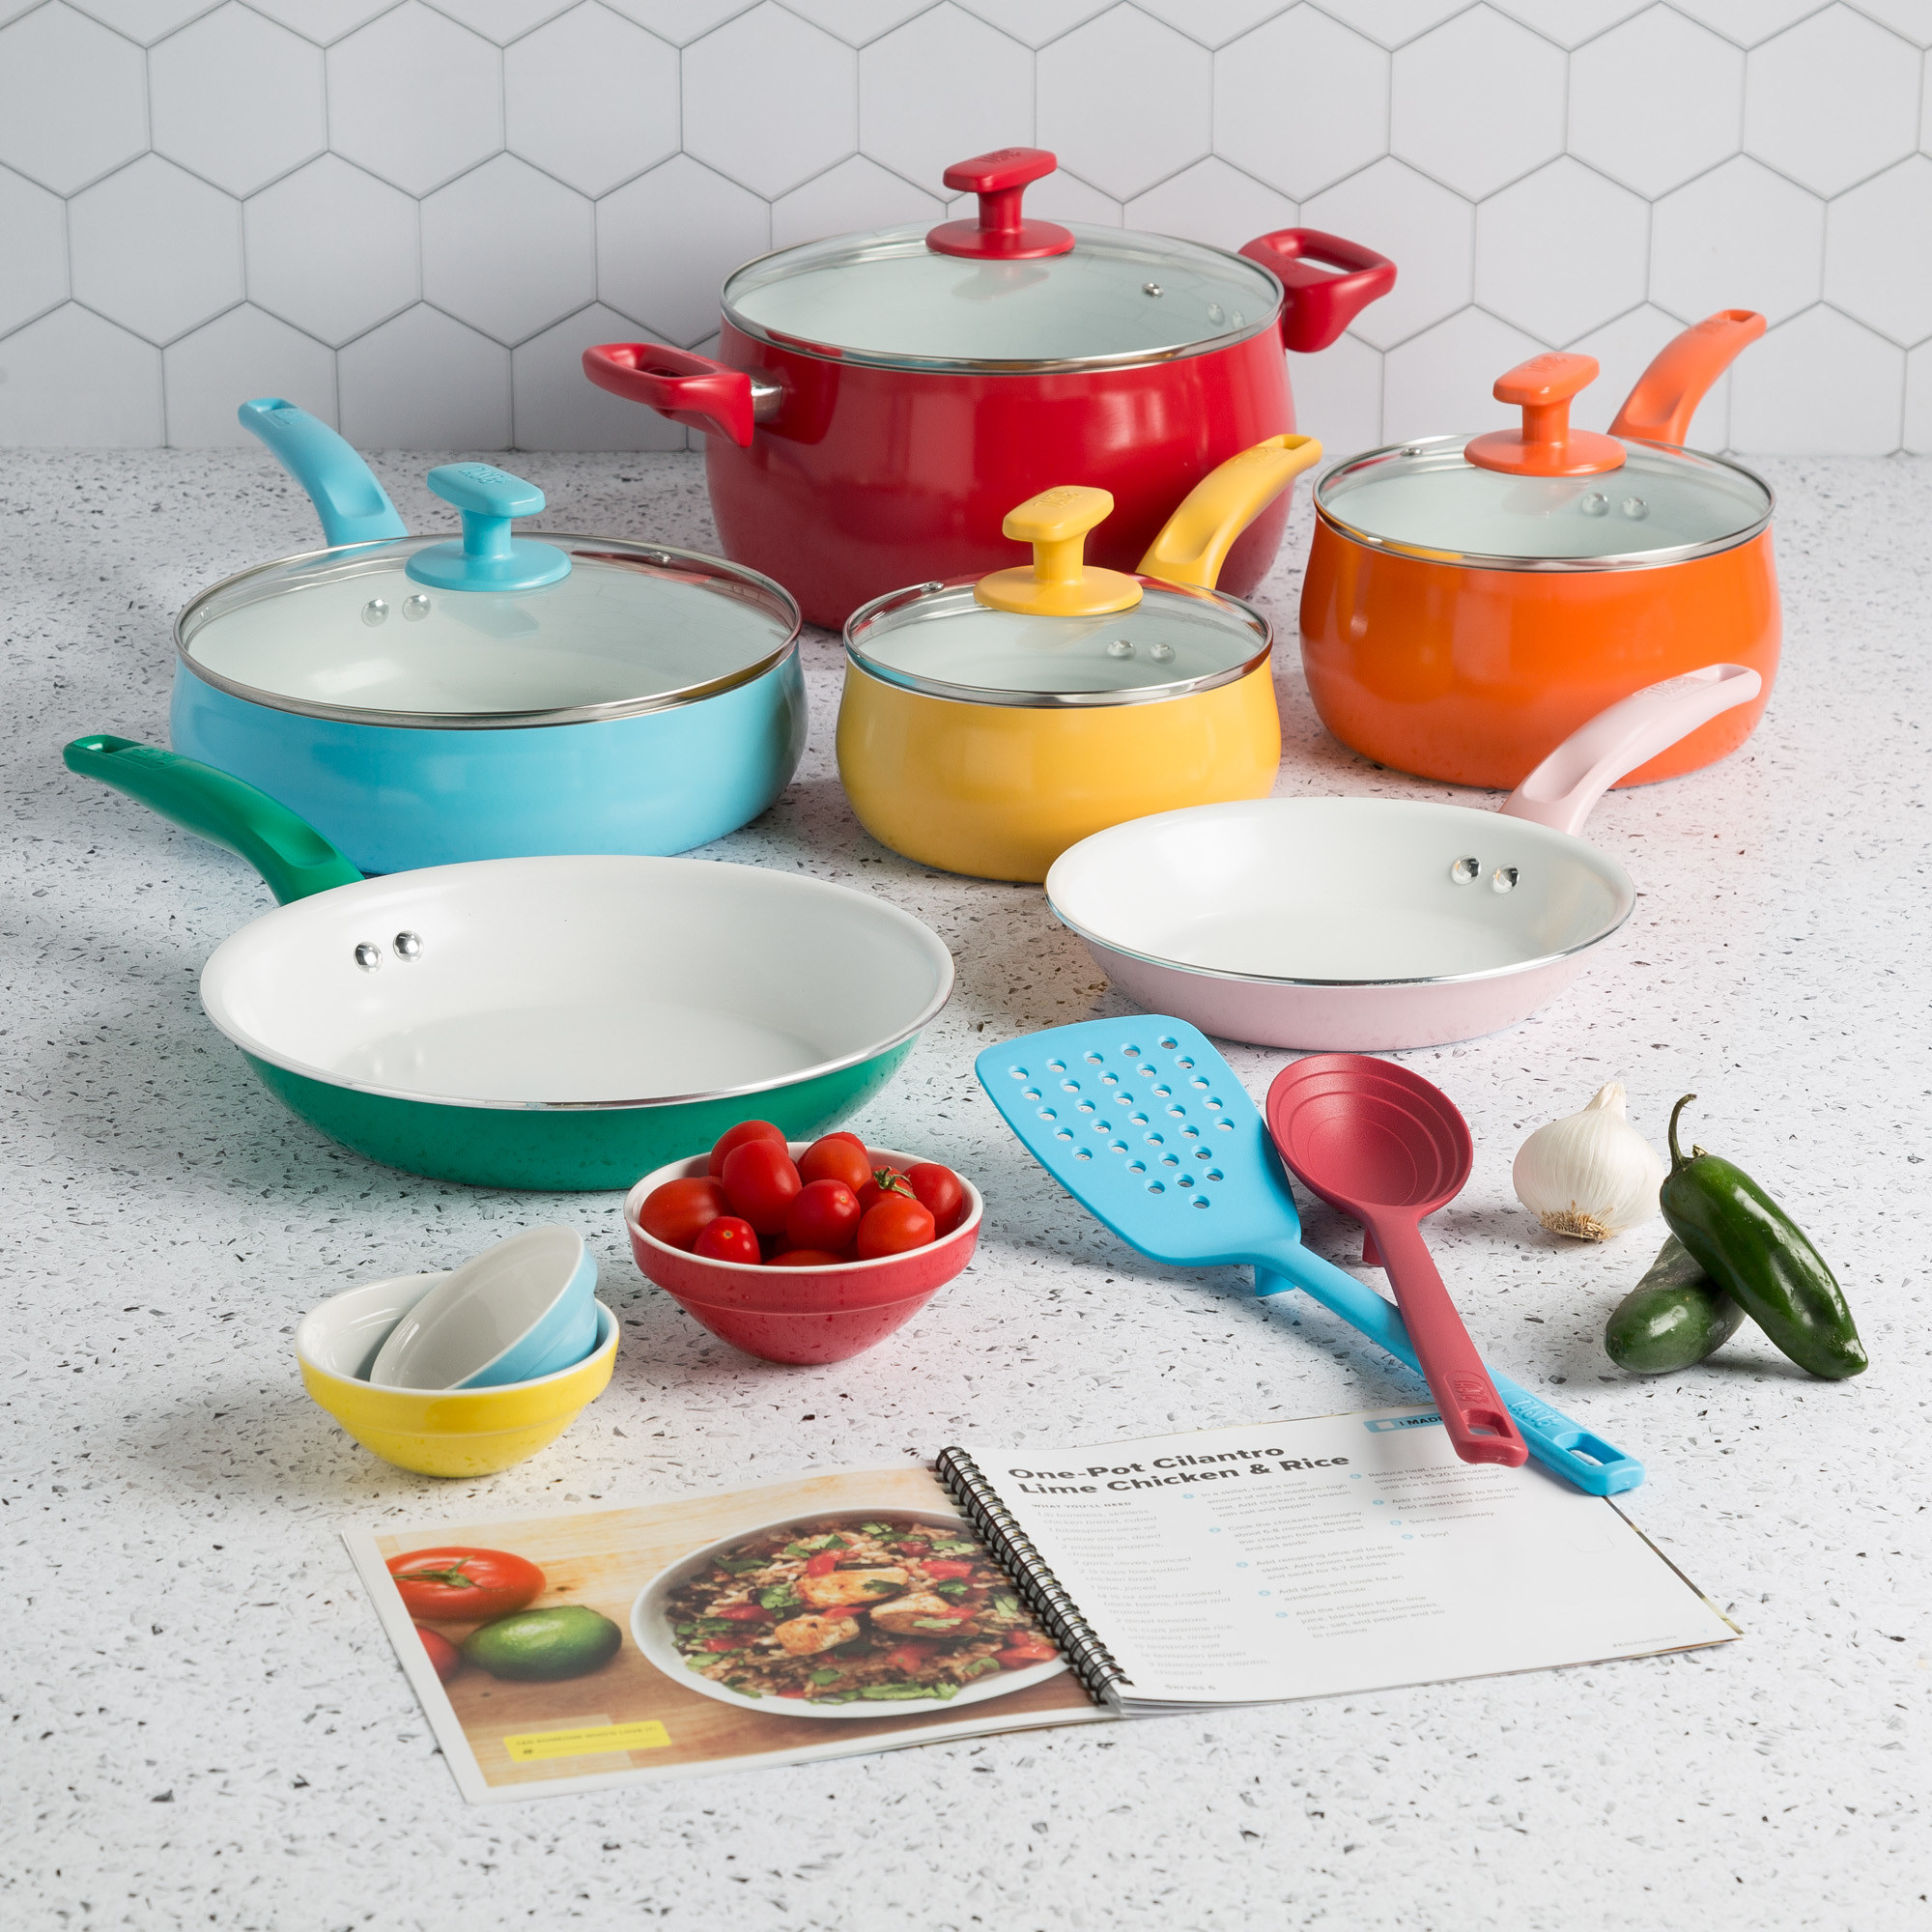 multi-colored pots and pans and utensils on a white table